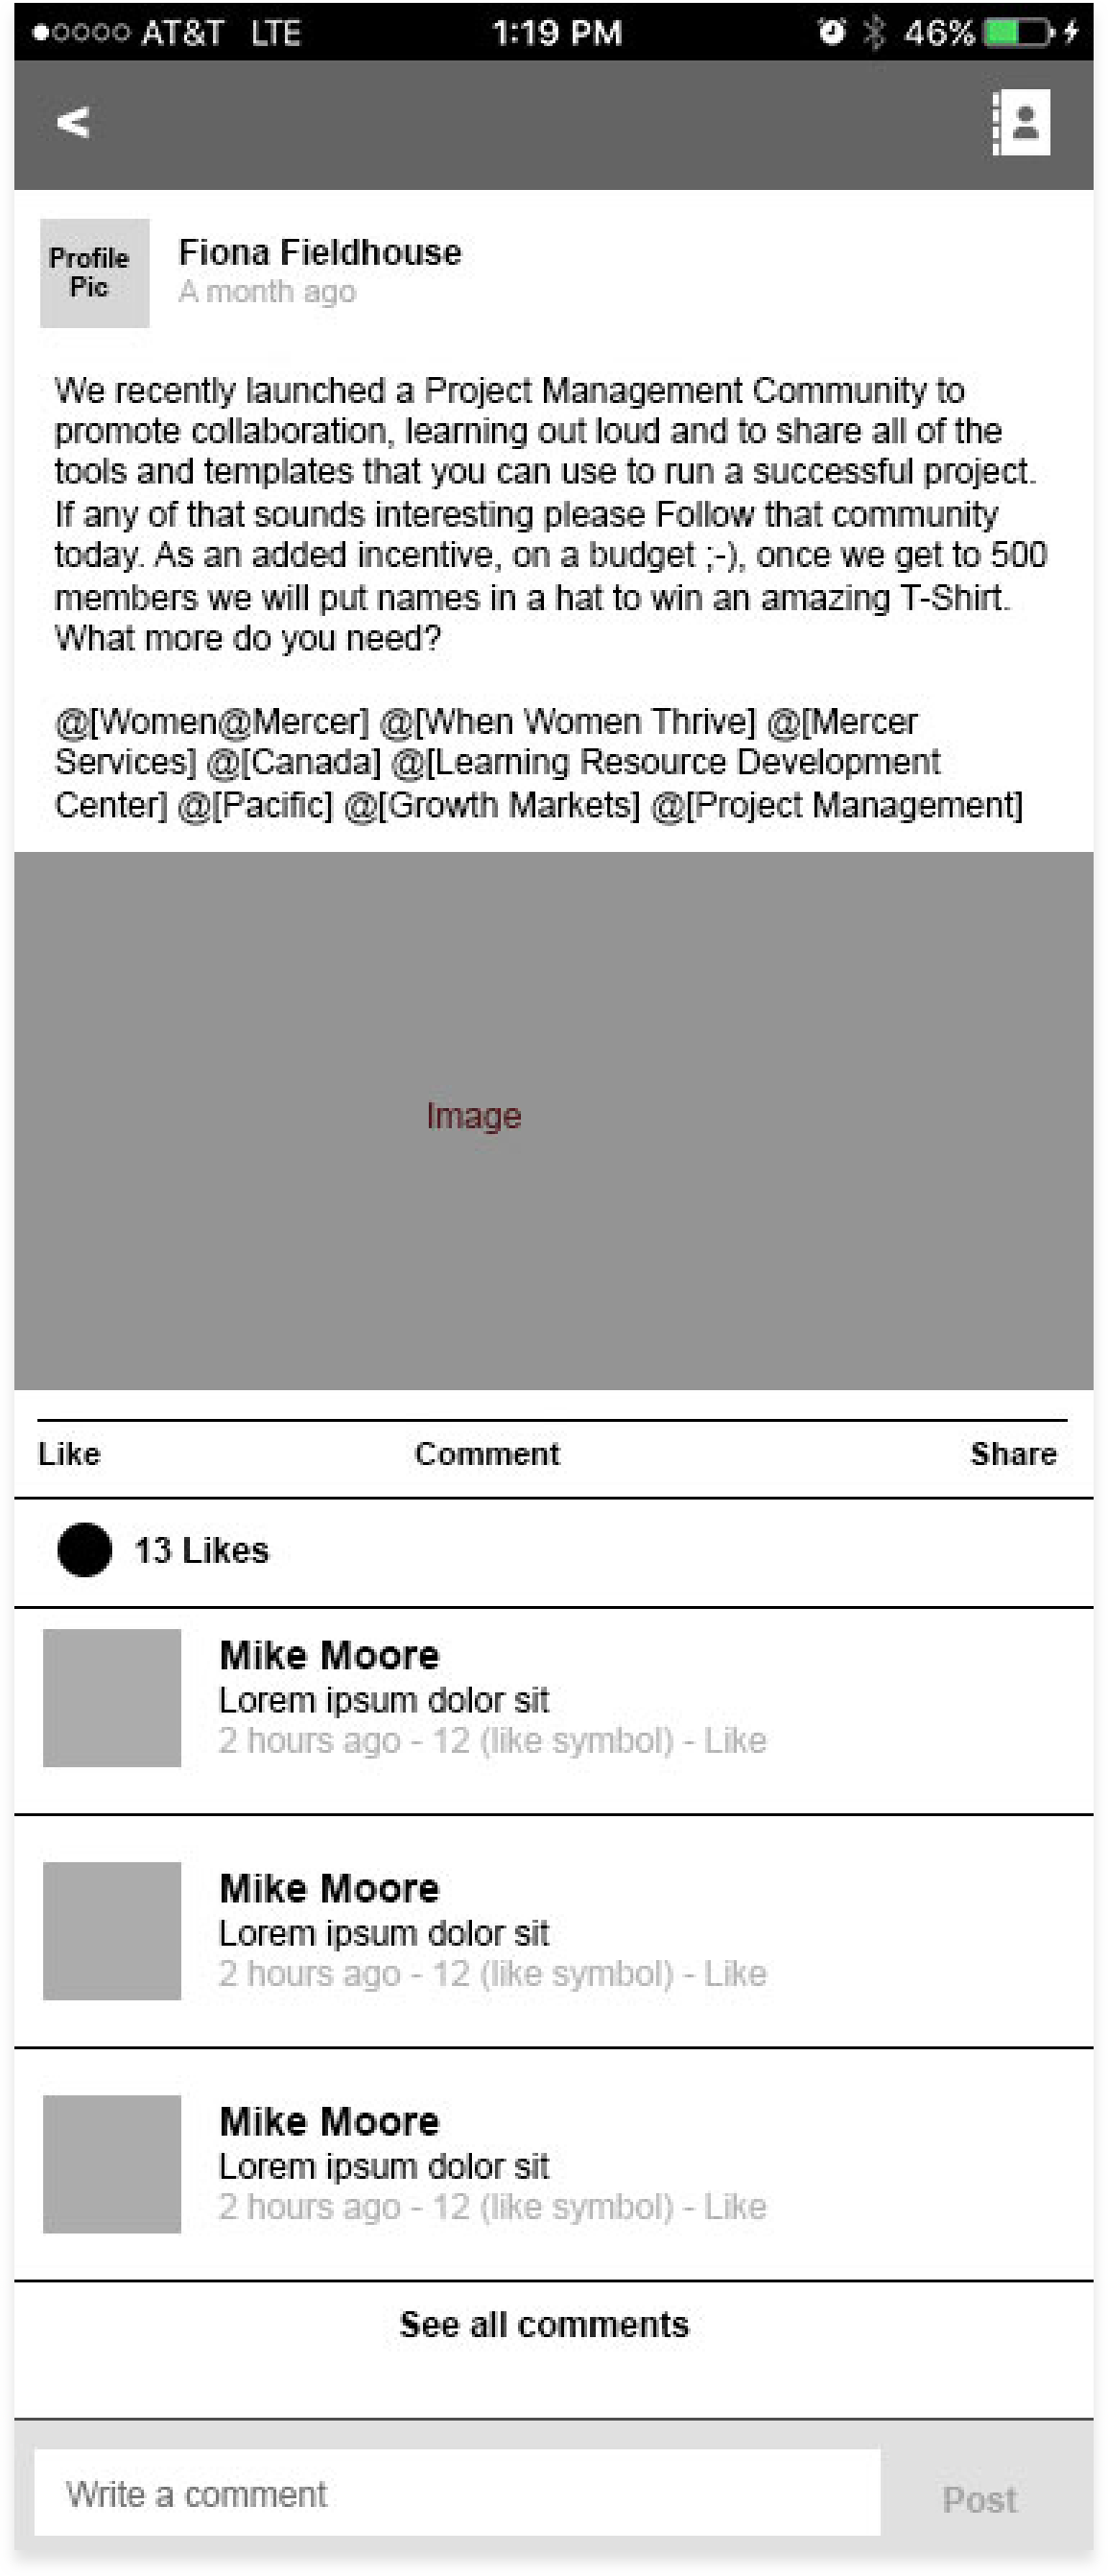 Image 1: An example post with comments and likes.